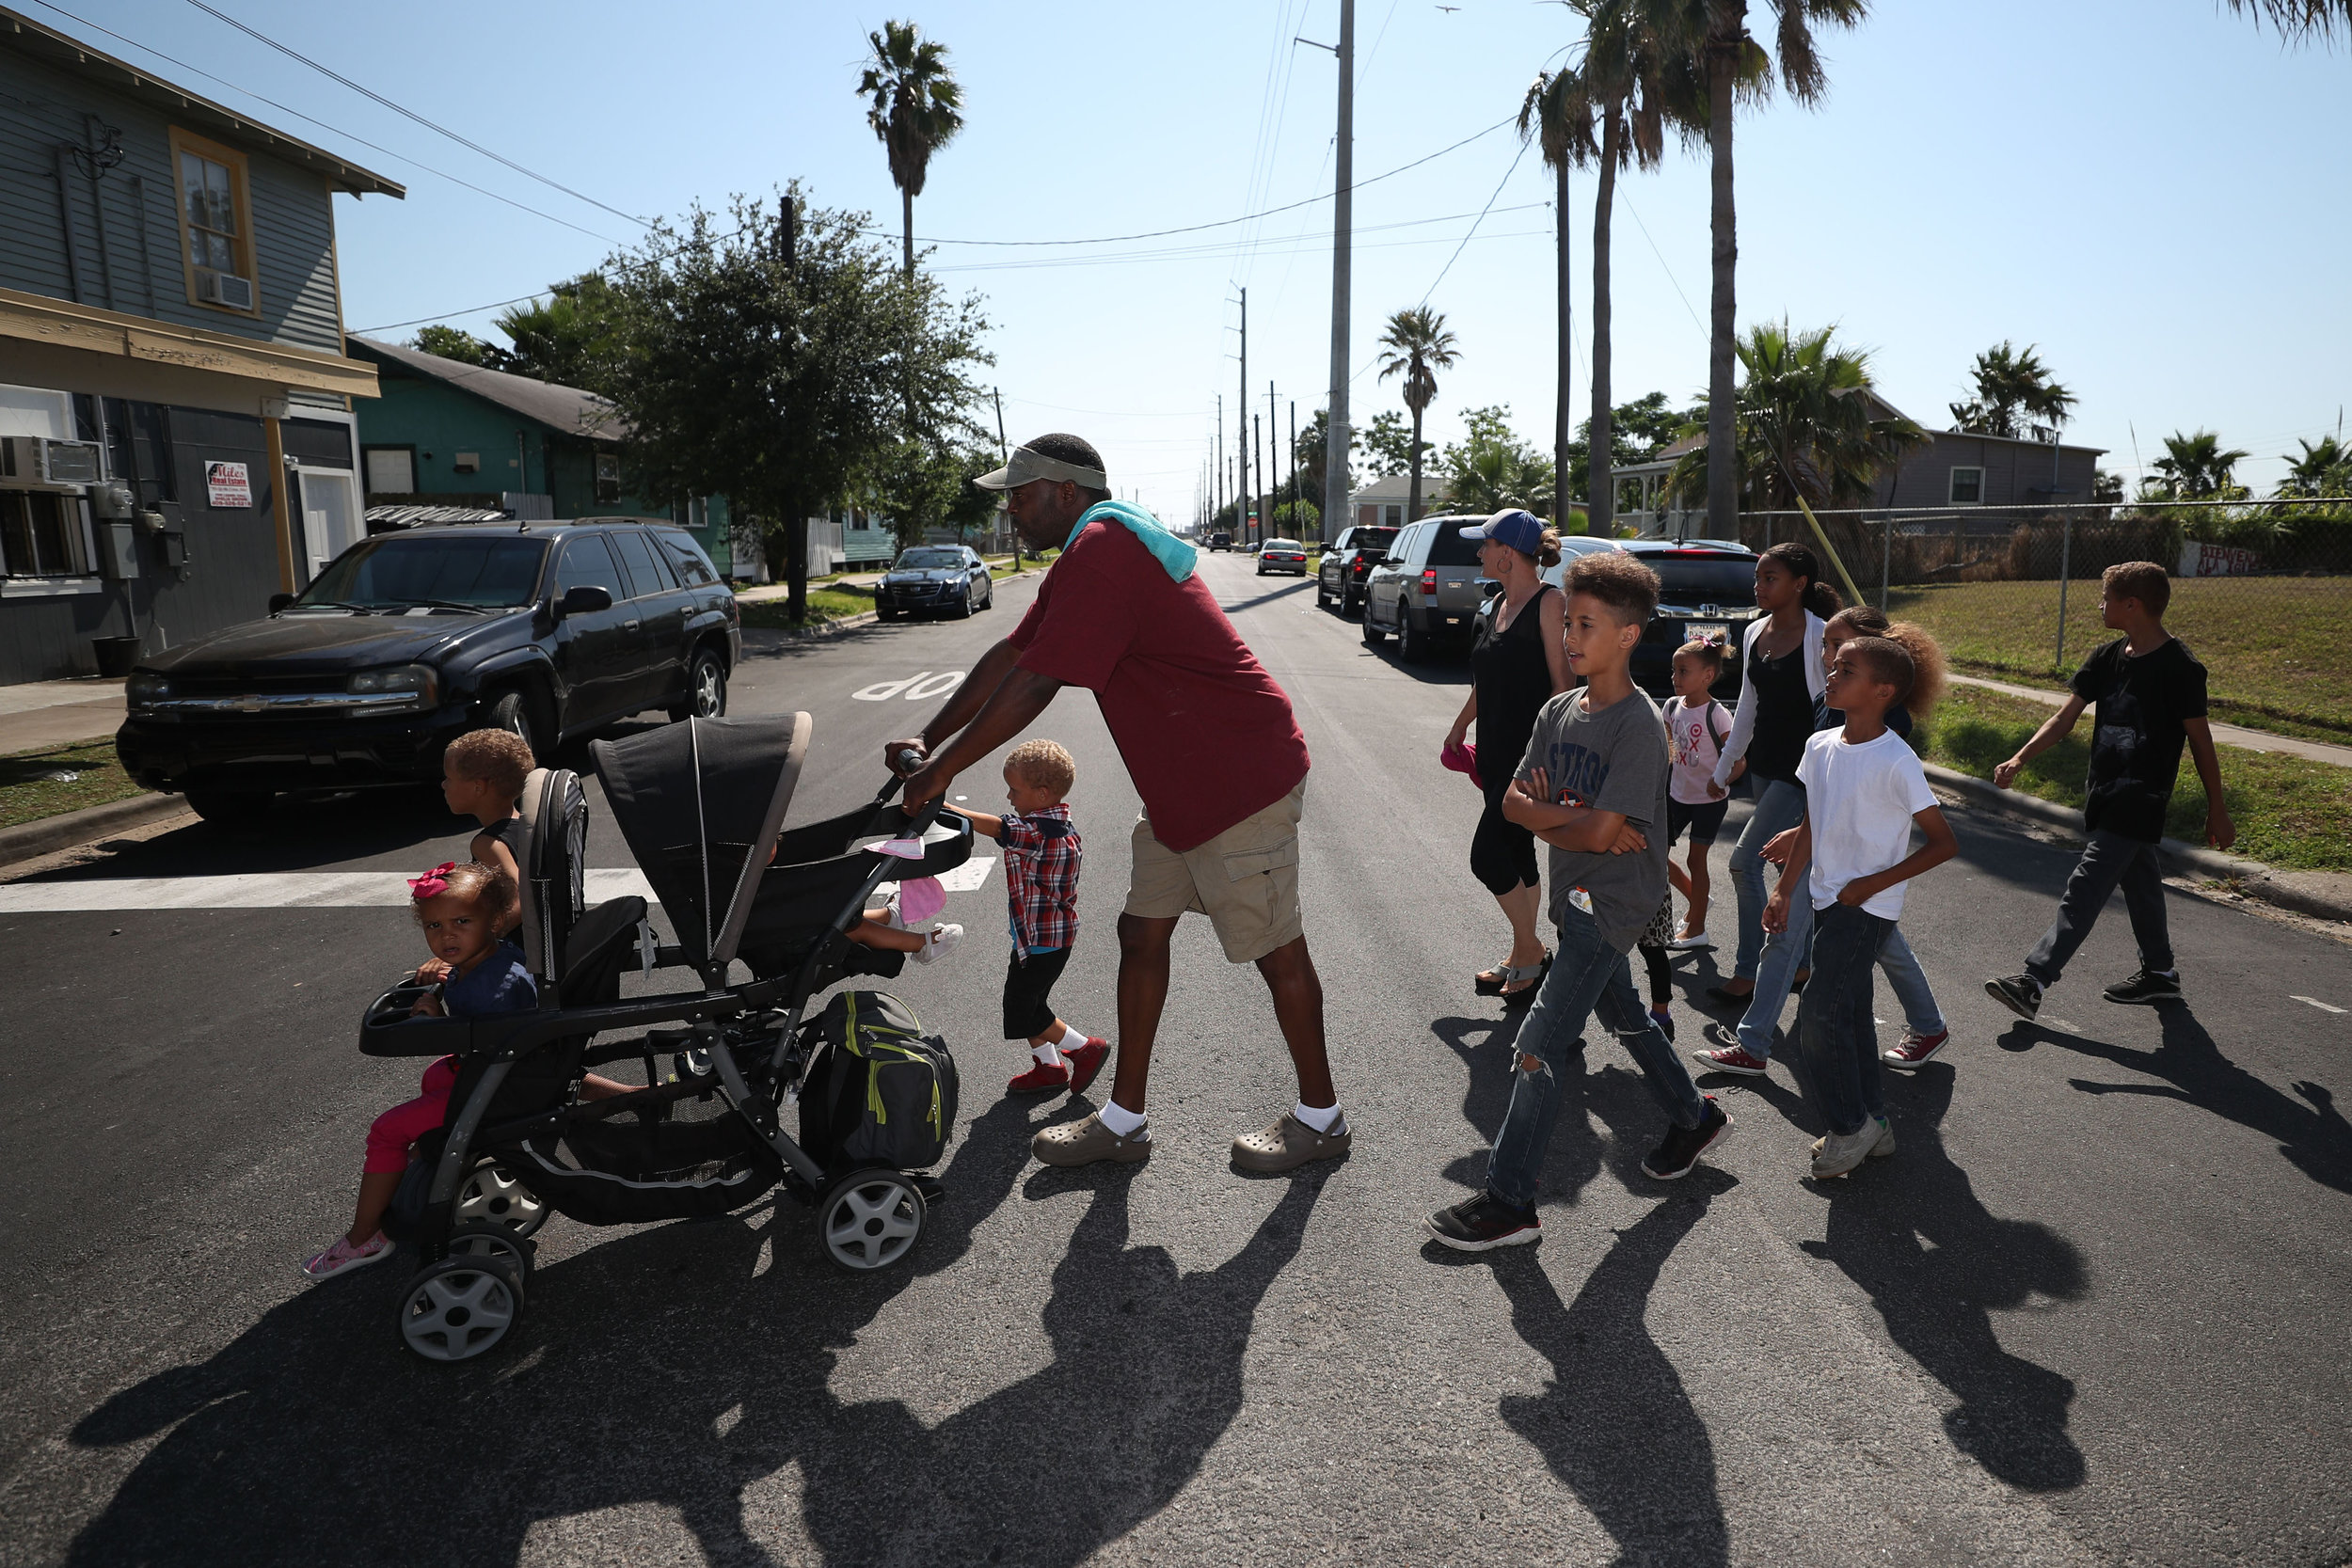 The Whites walk across the street together while on a walk to the Galveston Children's Museum on Wednesday, May 16, 2018. In their free time, the Whites often take trips to museums and the beach for some afternoon entertainment, but they always walk since they do not own a car.